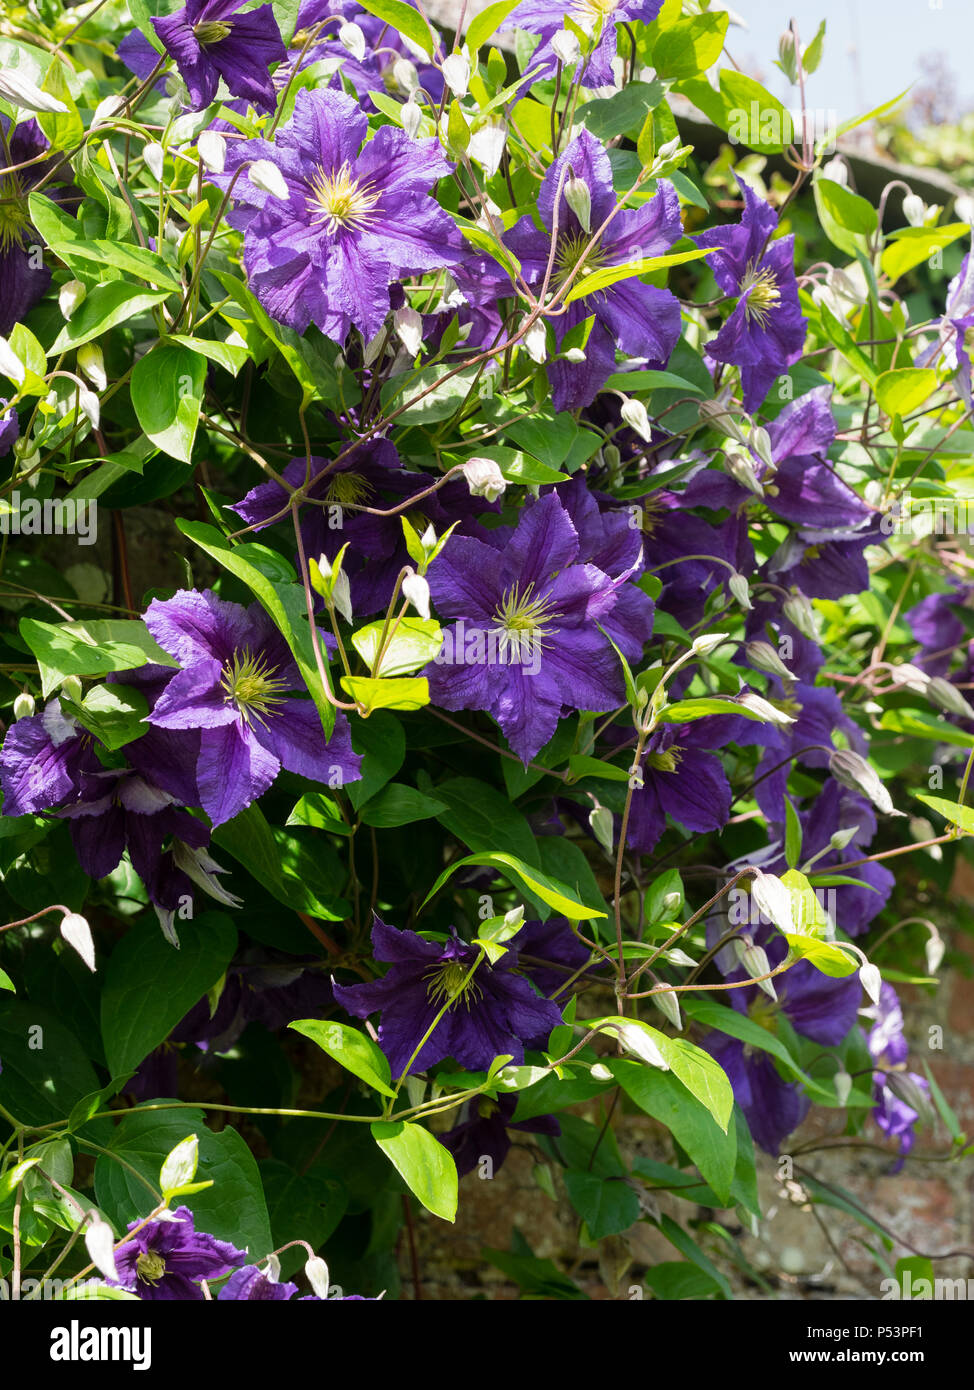 Singe blue-violet summer flowers of the hardy climber, Clematis viticella 'Wisley' Stock Photo